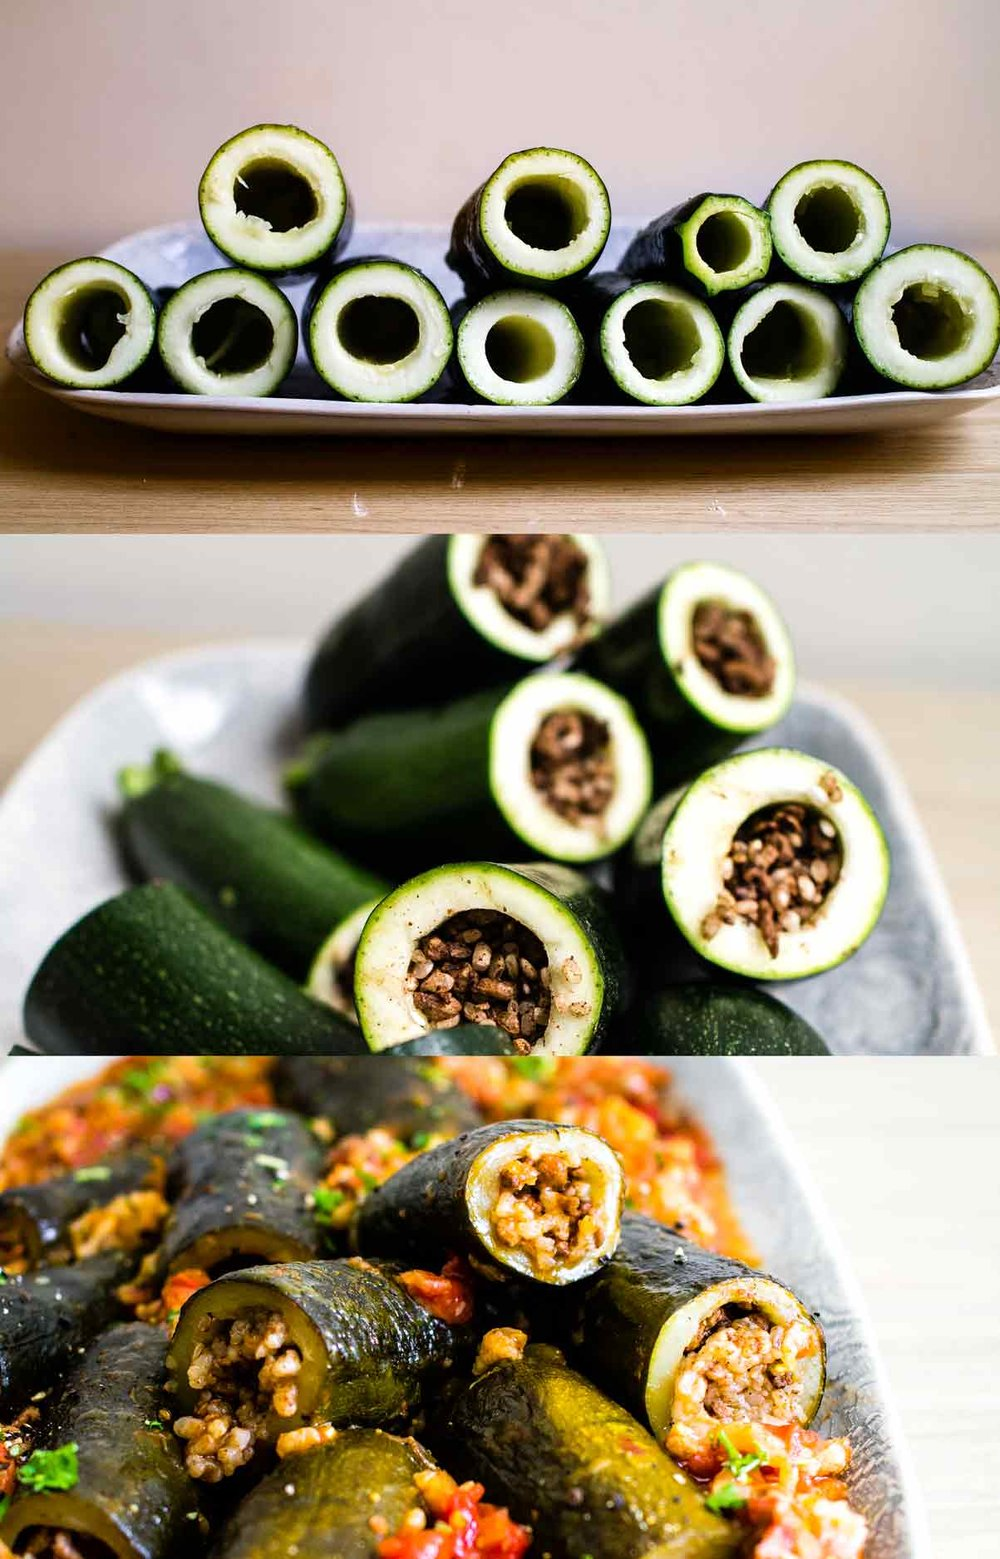 Stuffed Courgettes (zucchini) | Israeli Stuffed Tomatoes and Courgettes | Vegan Recipe | Discover Delicious | www.discoverdelicious.org